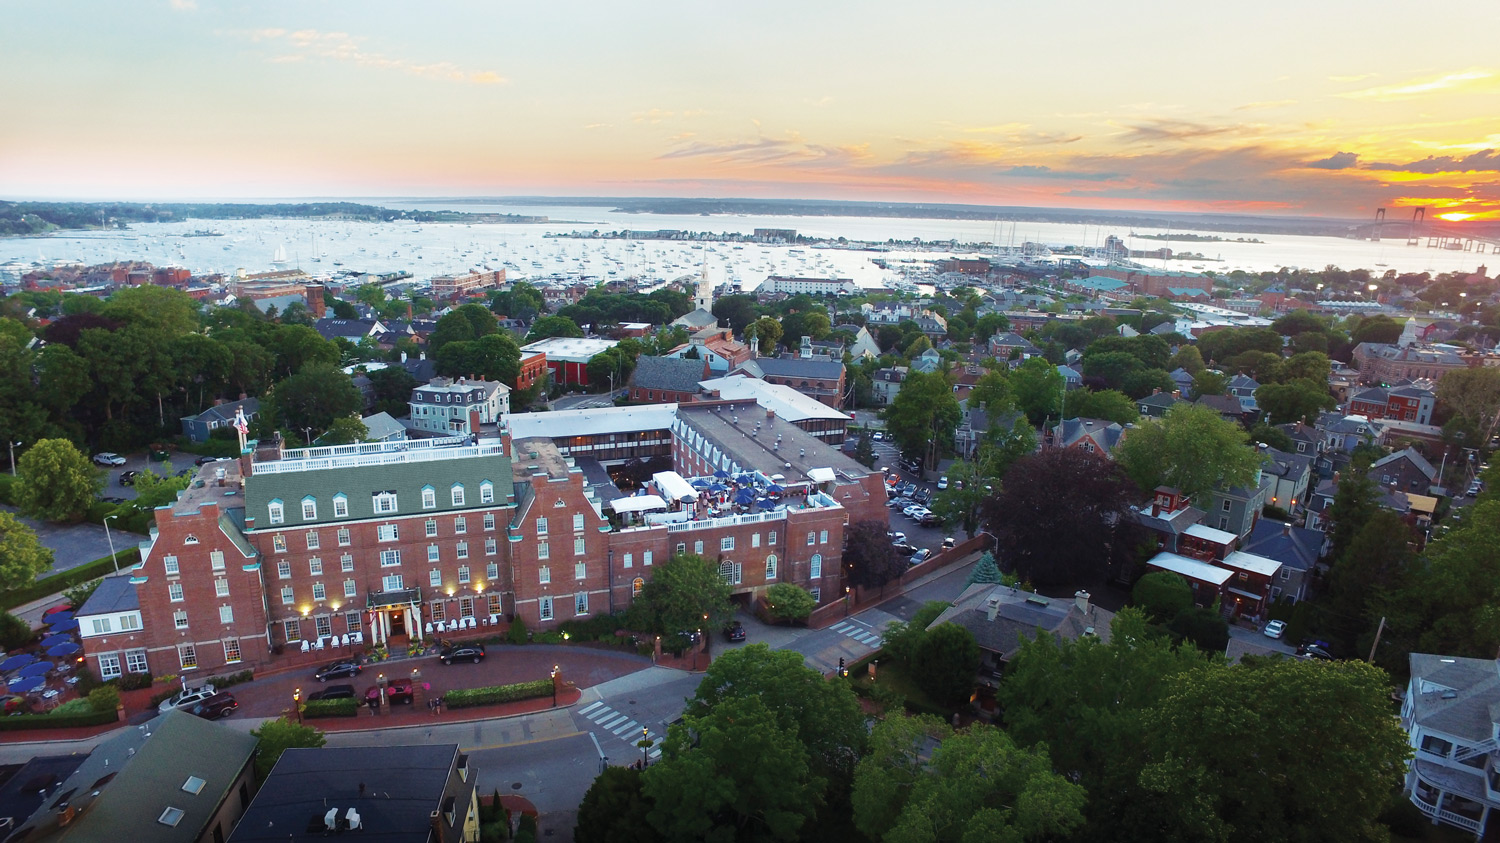 Bird's-eye view of Hotel Viking in Newport.